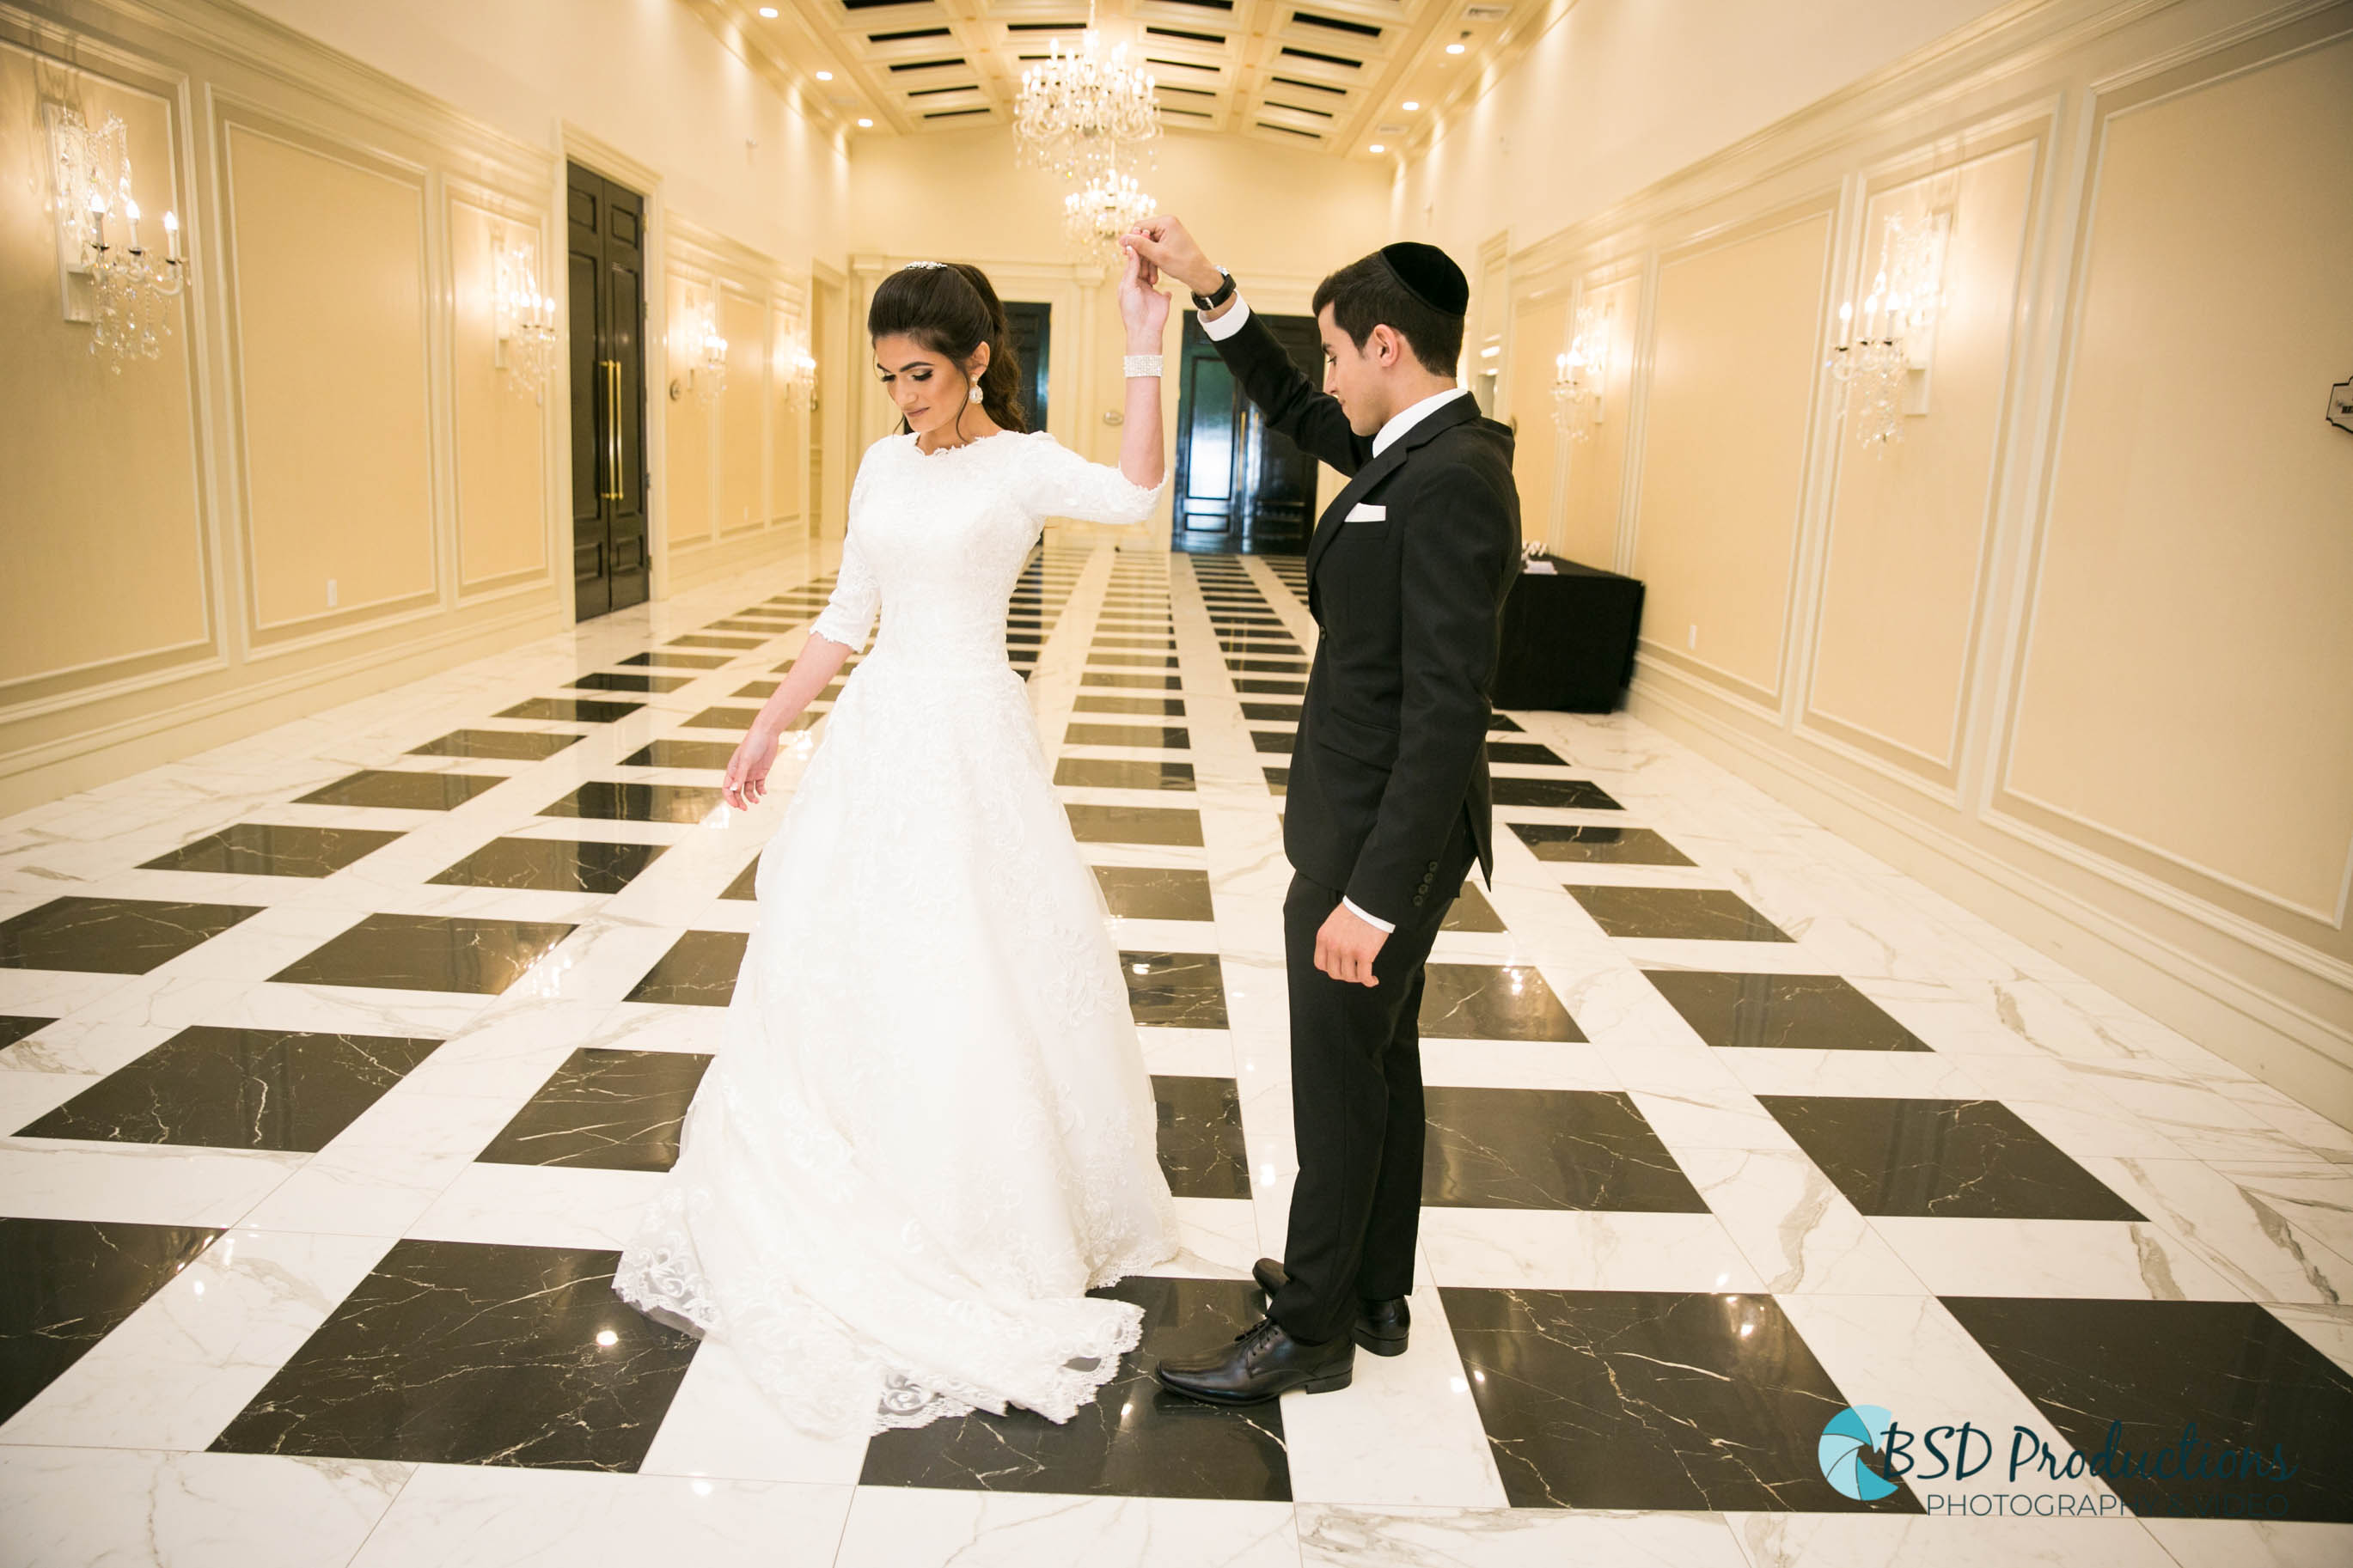 UH5A4595 Wedding – BSD Productions Photography